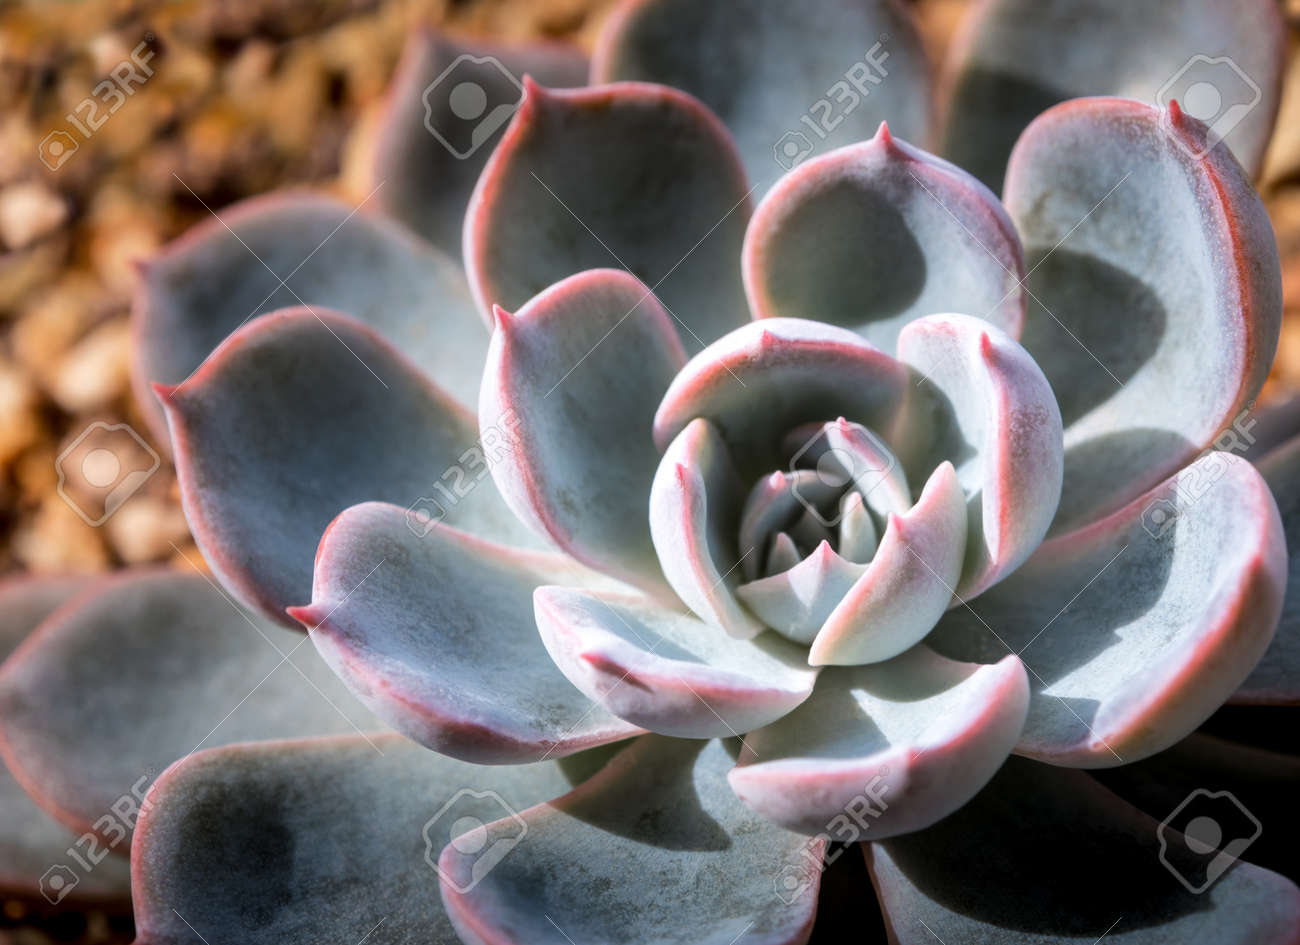 Succulent plant close-up, white wax on silver blue leaves of Echeveria peacockii Subsessilis - 171431438